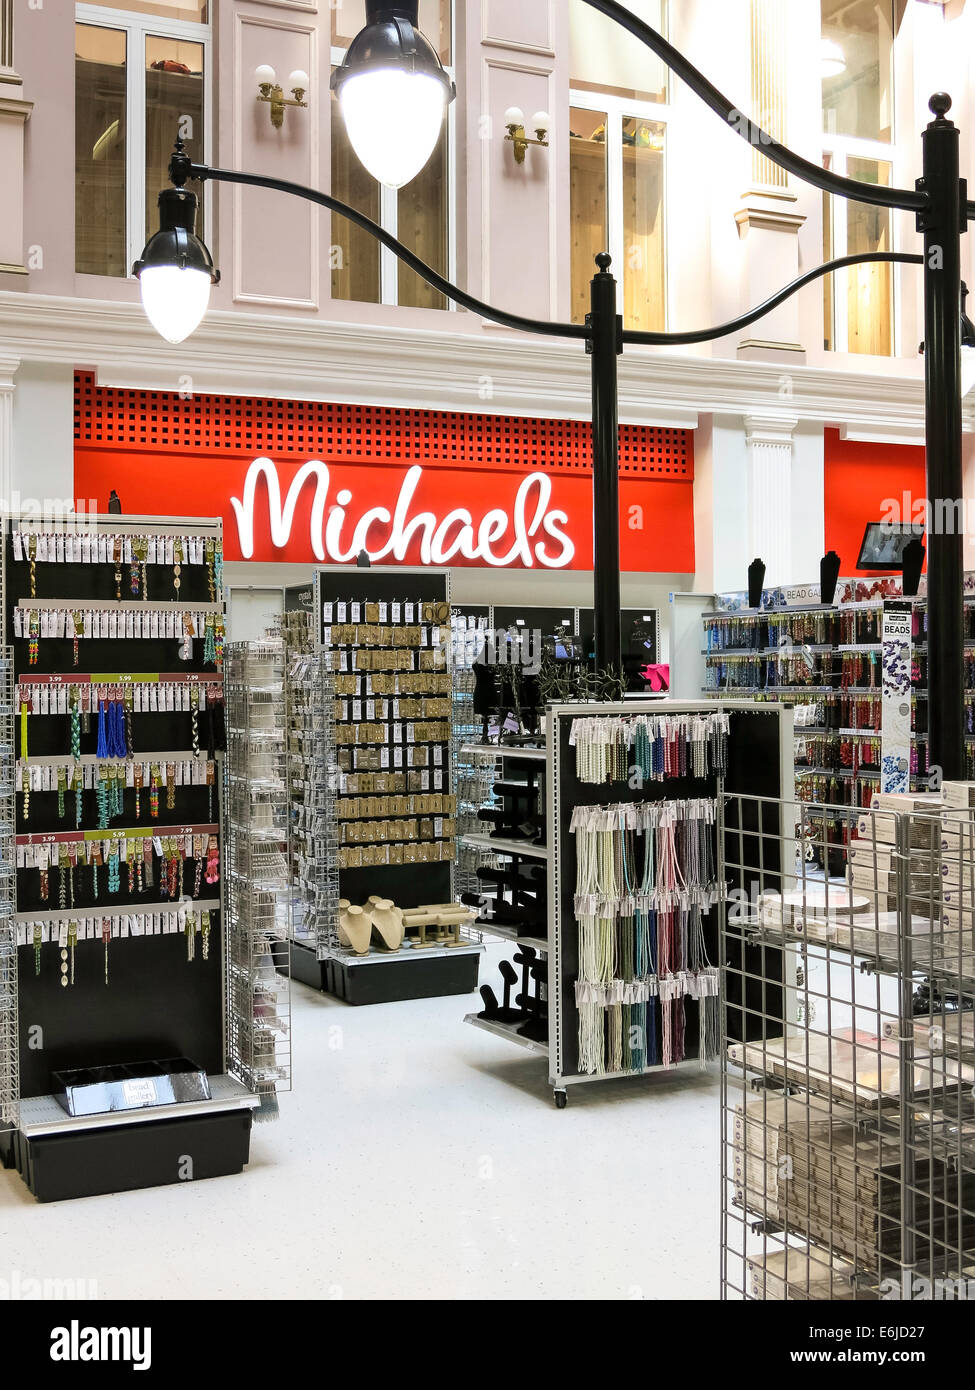 Michael S Arts And Crafts Store Nyc Stock Photo 72934799 Alamy